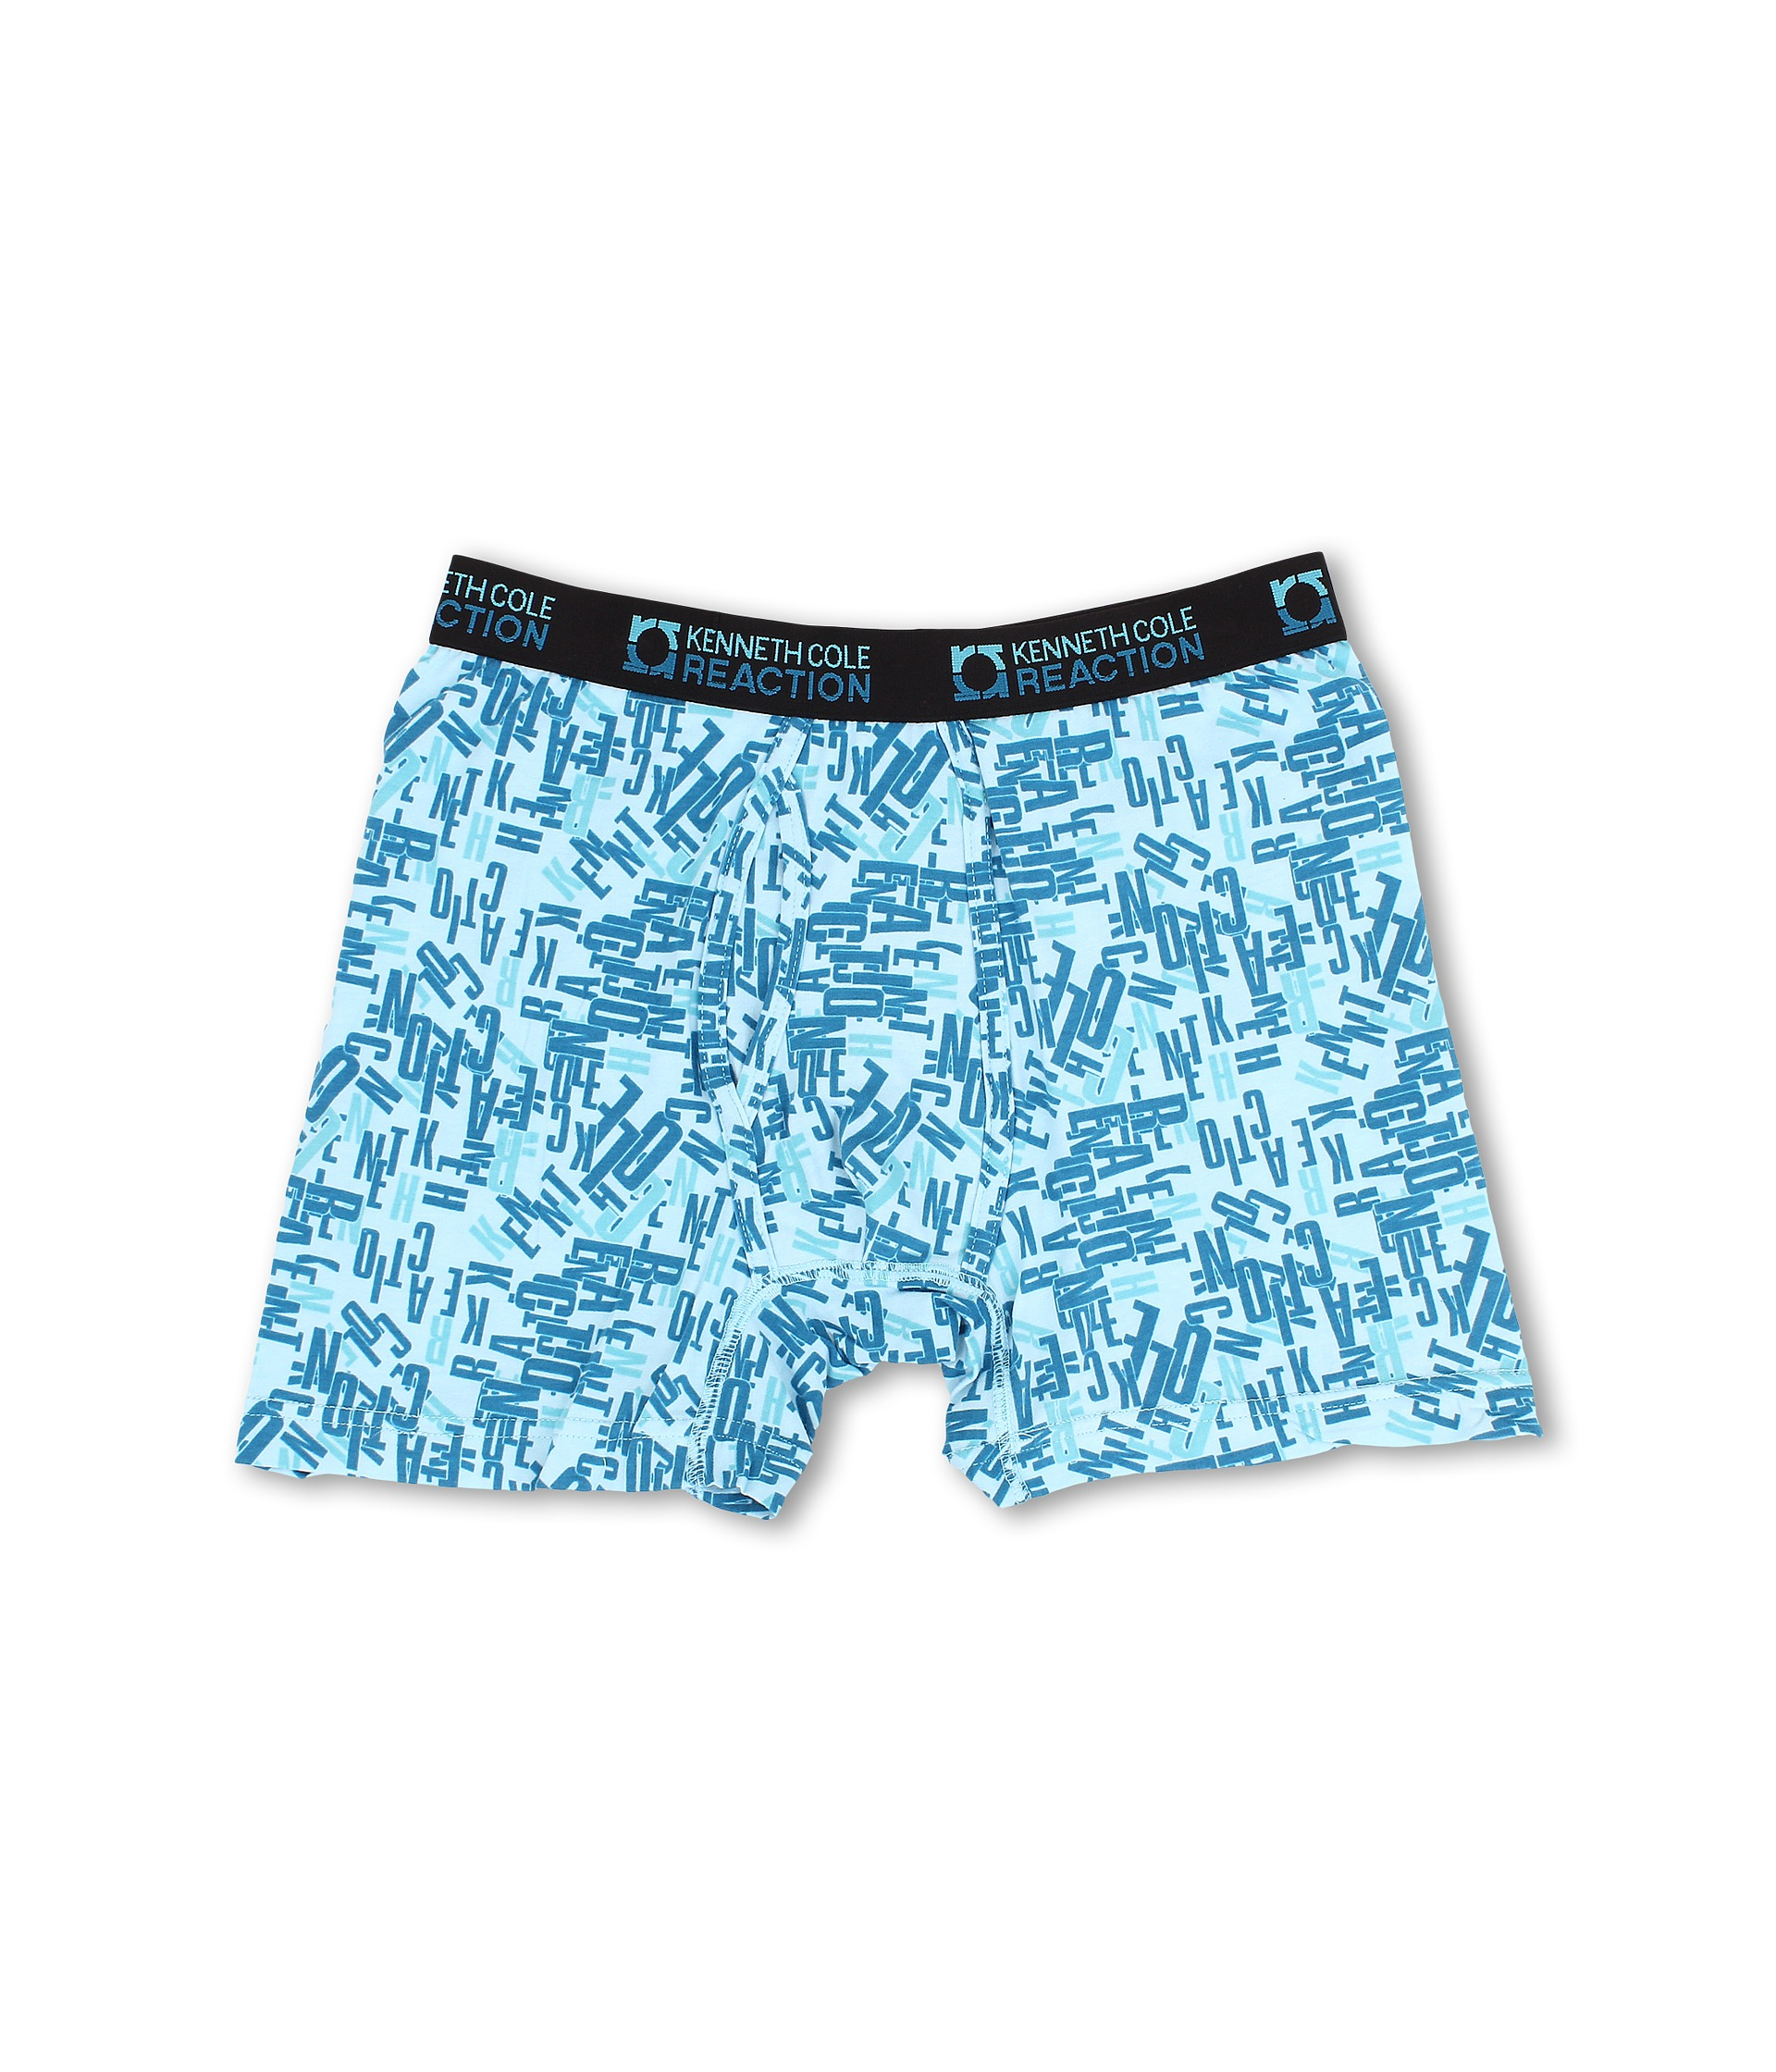 kenneth cole reaction all over logo stretch boxer briefs